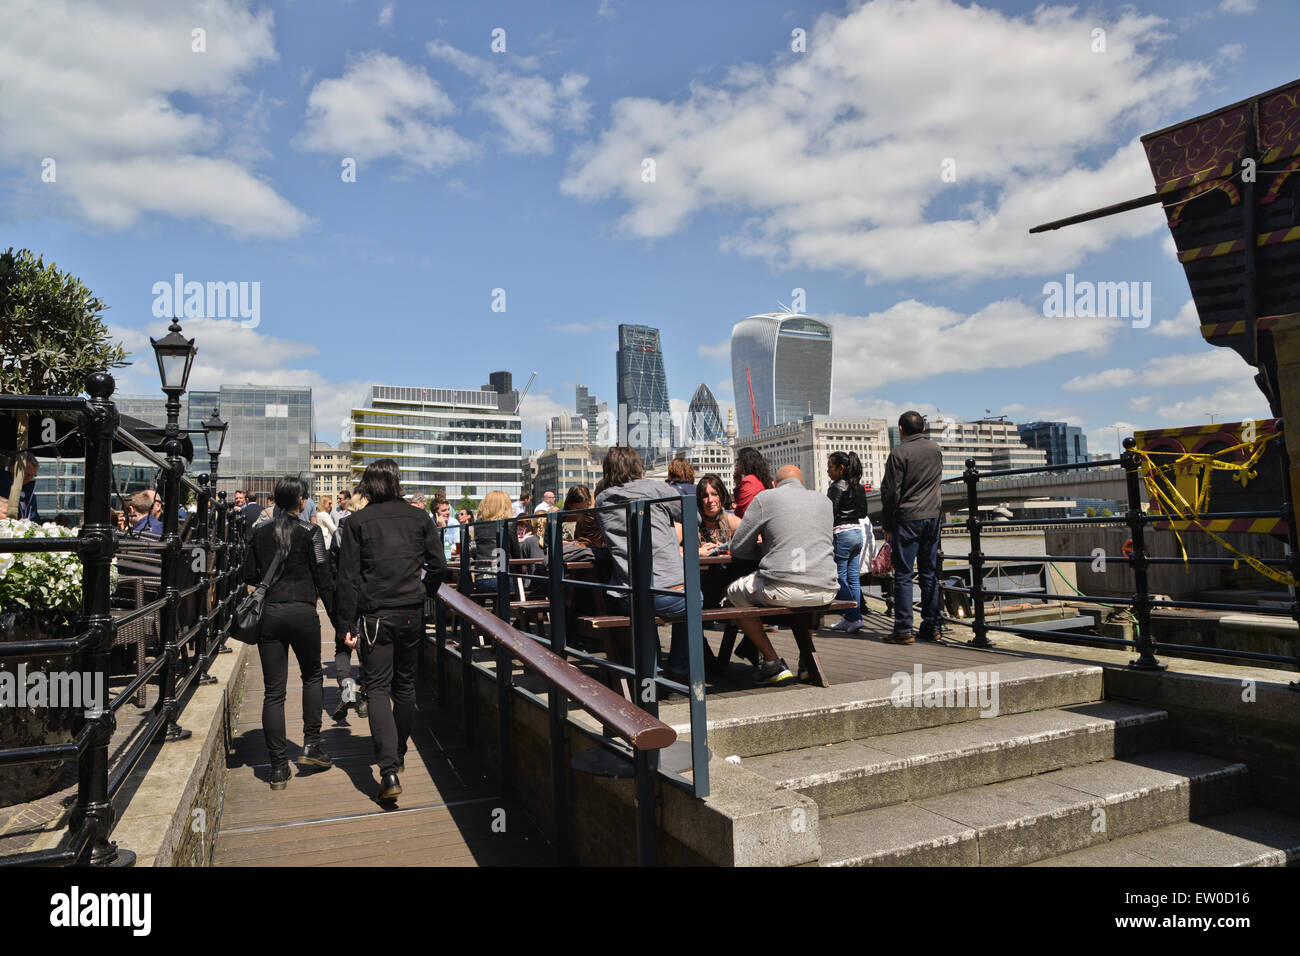 People sitting outside bar with City skyline in background on the banks of the River Thames in Southwark London - Stock Image